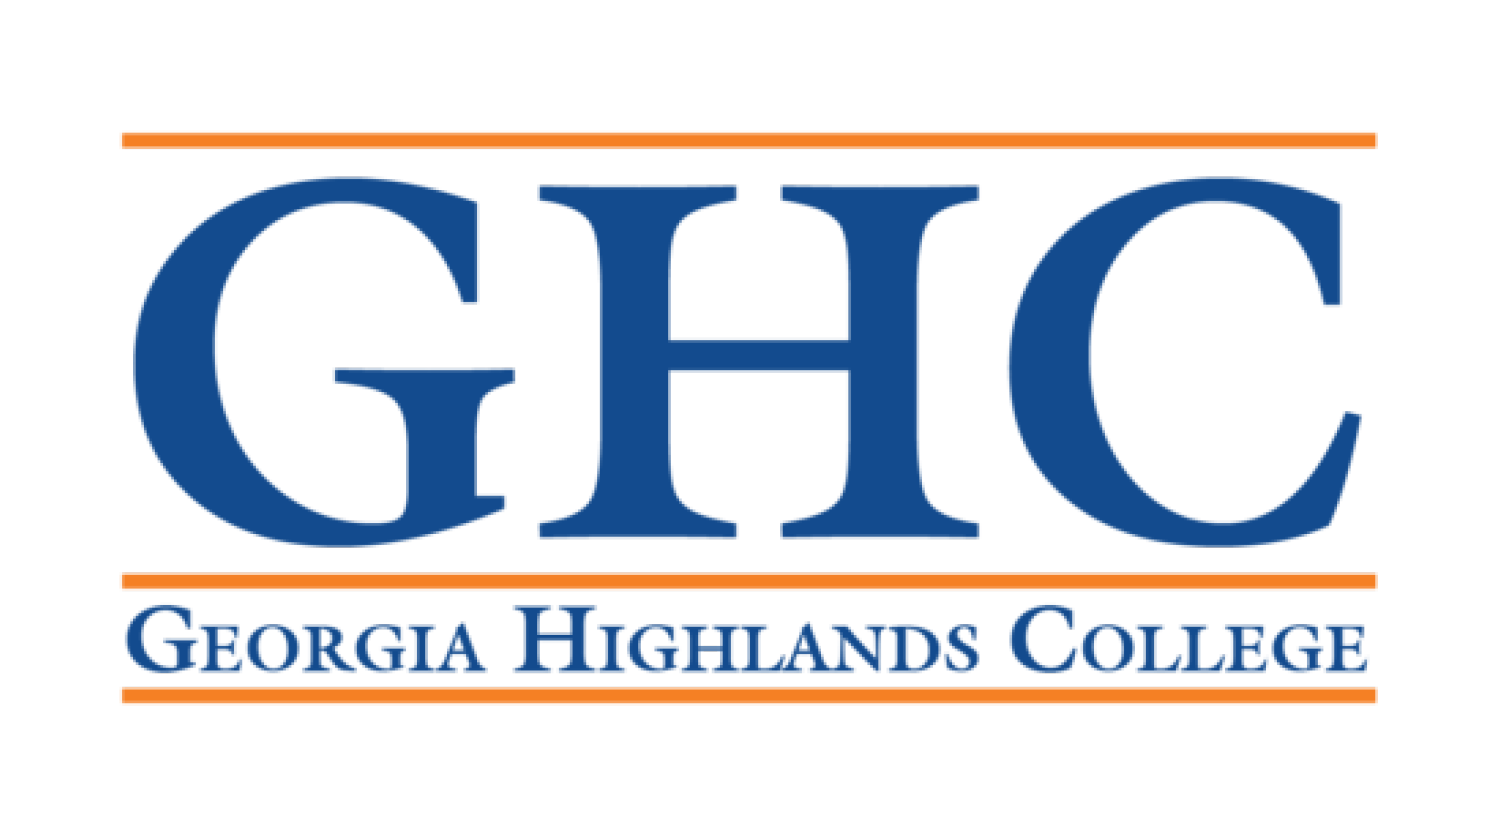 GHC+logo-01.png